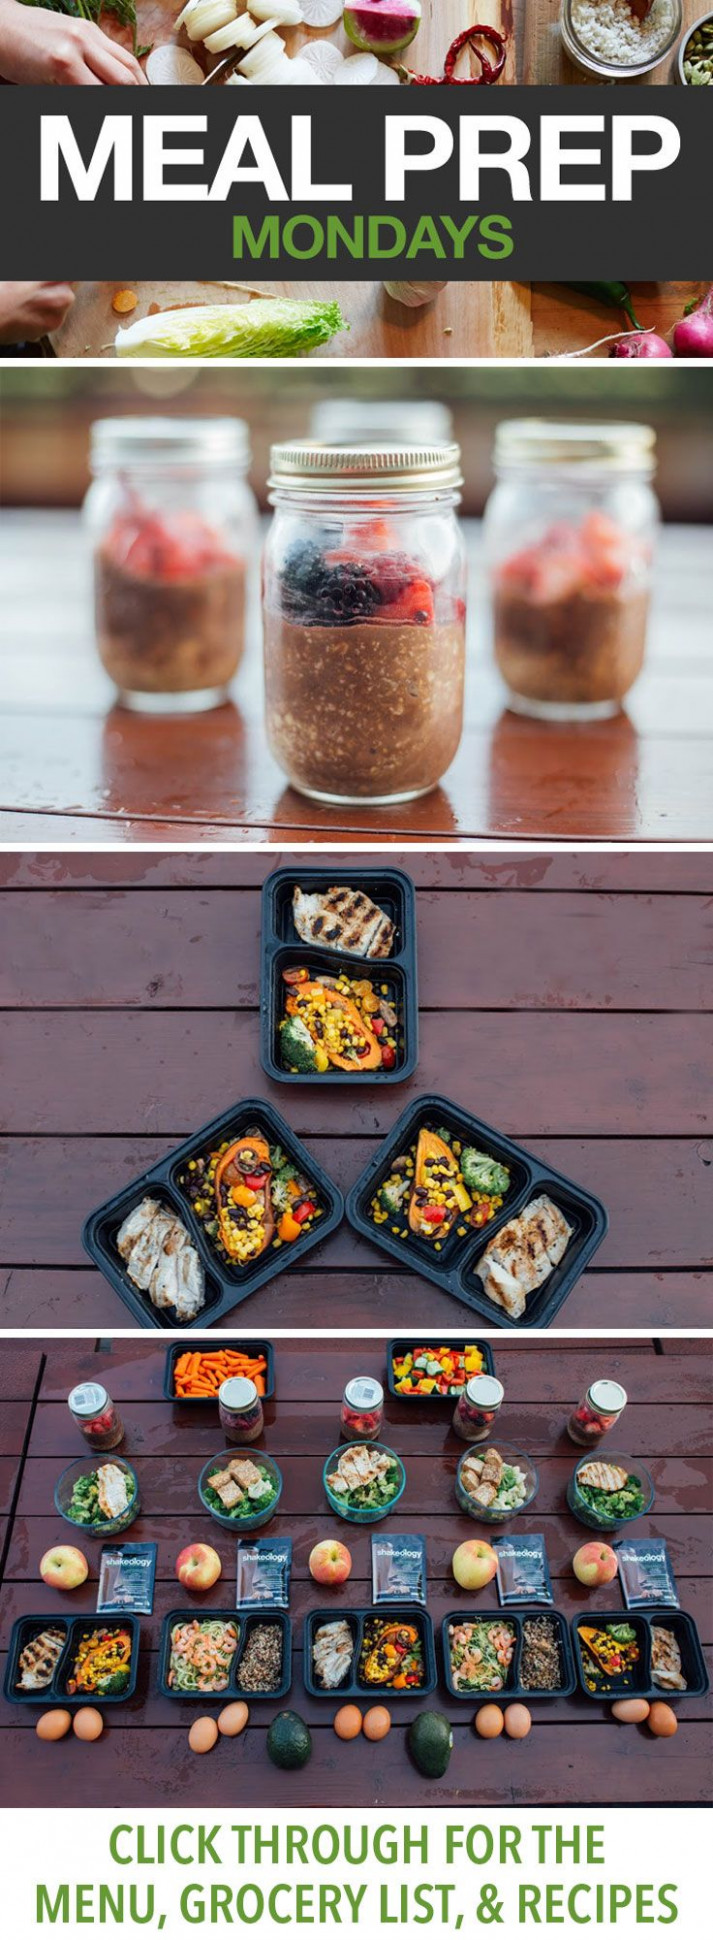 Meal Prep This Week with Stuffed Sweet Potatoes, Chicken ..